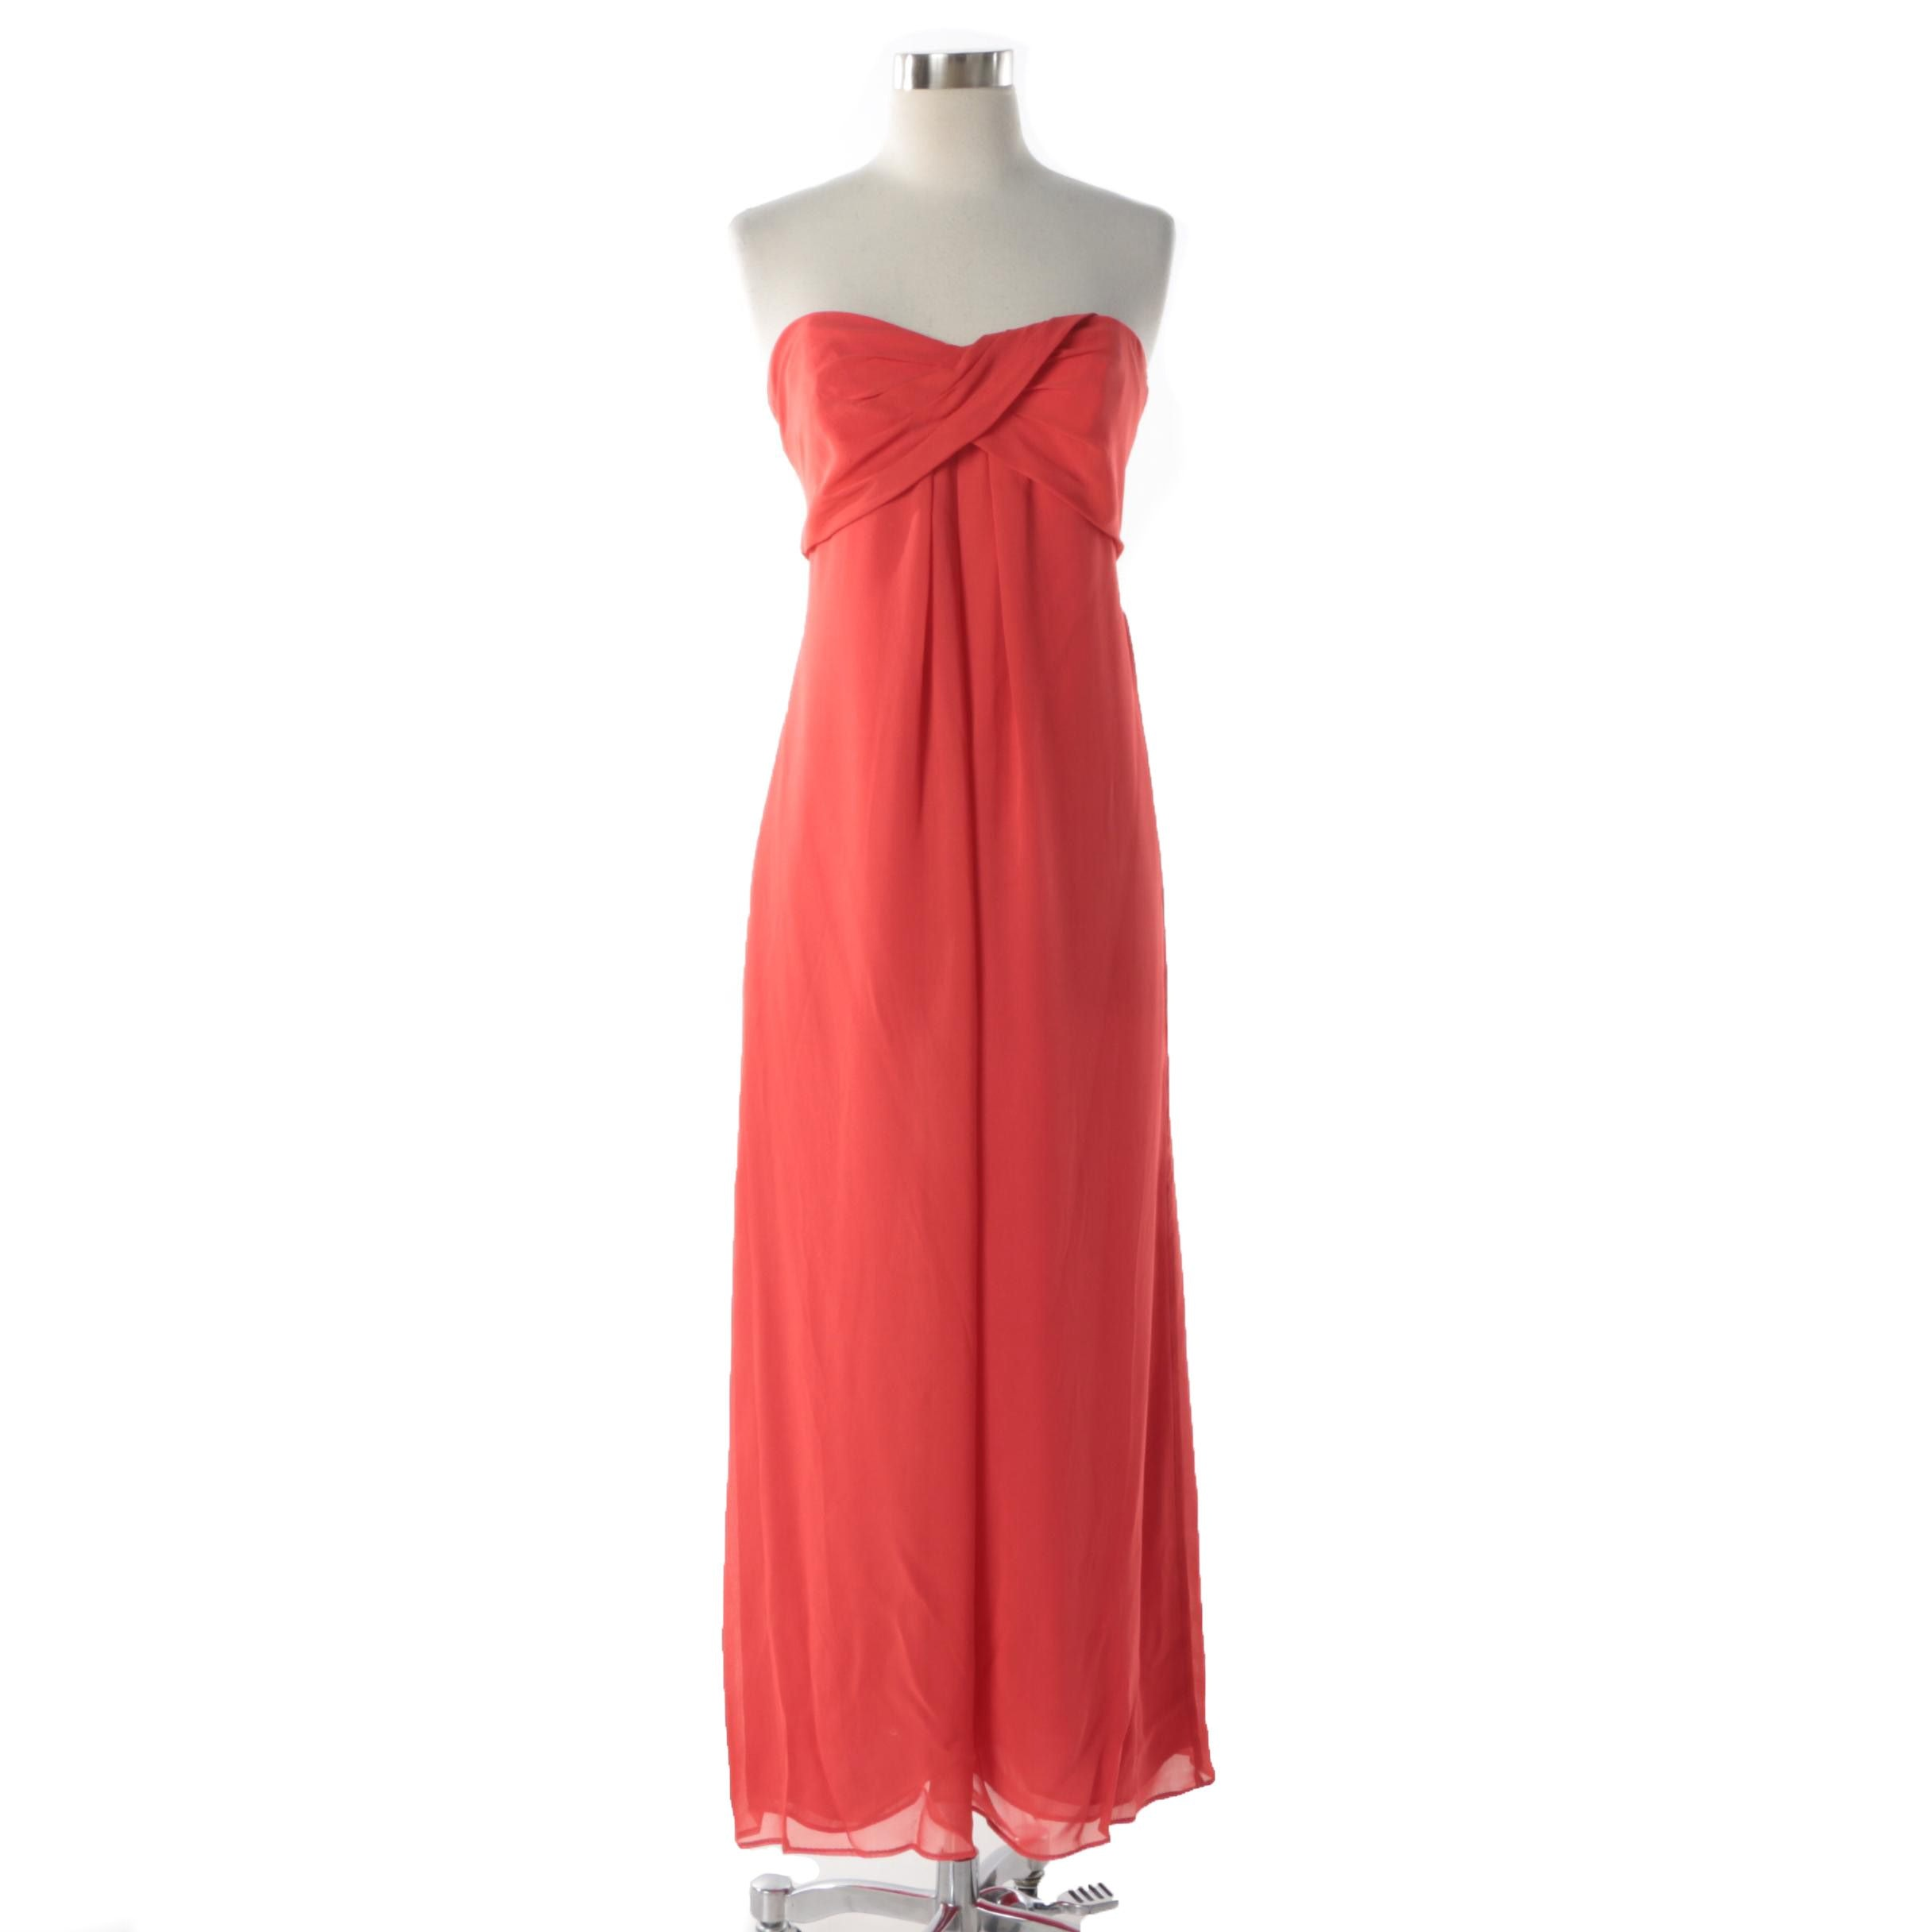 Nicole Miller New York City Coral Silk Blend Strapless Gown